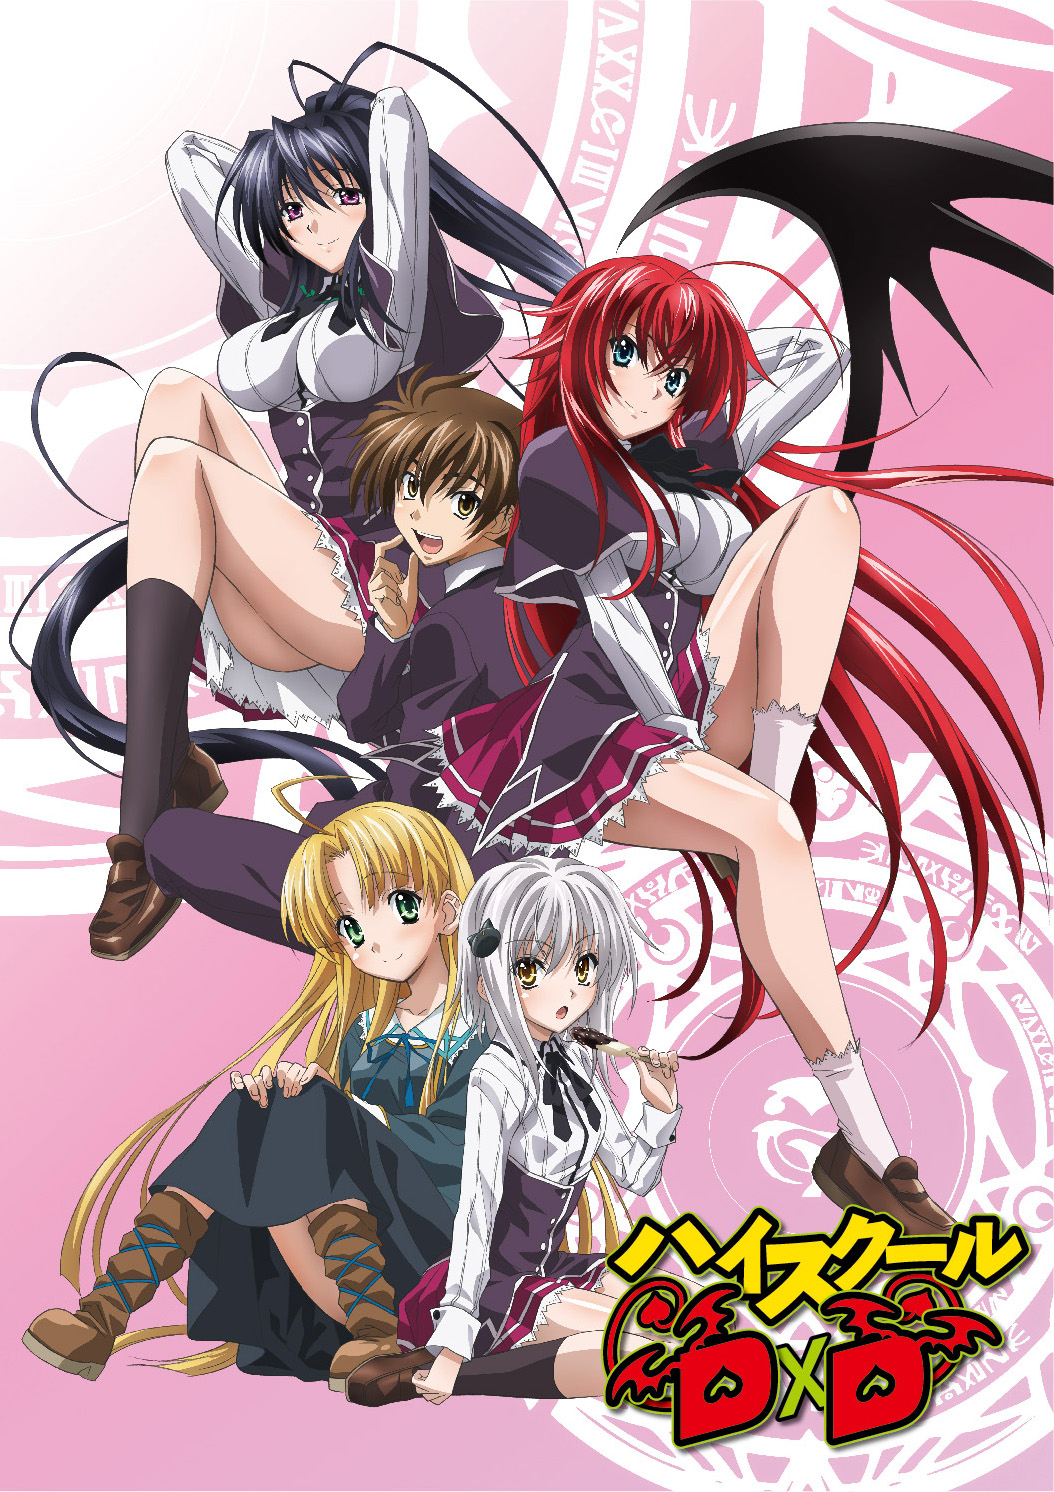 HentaiStream.com High School DxD Episode 5